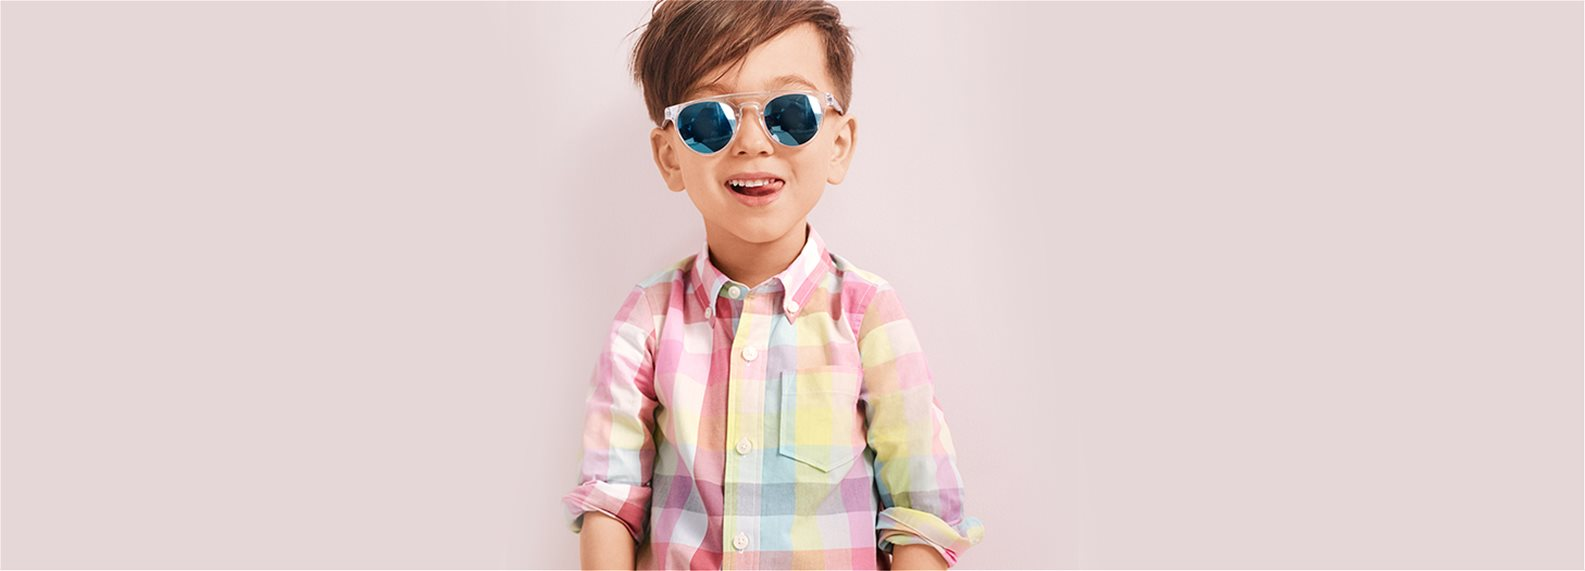 GAP KIDS image